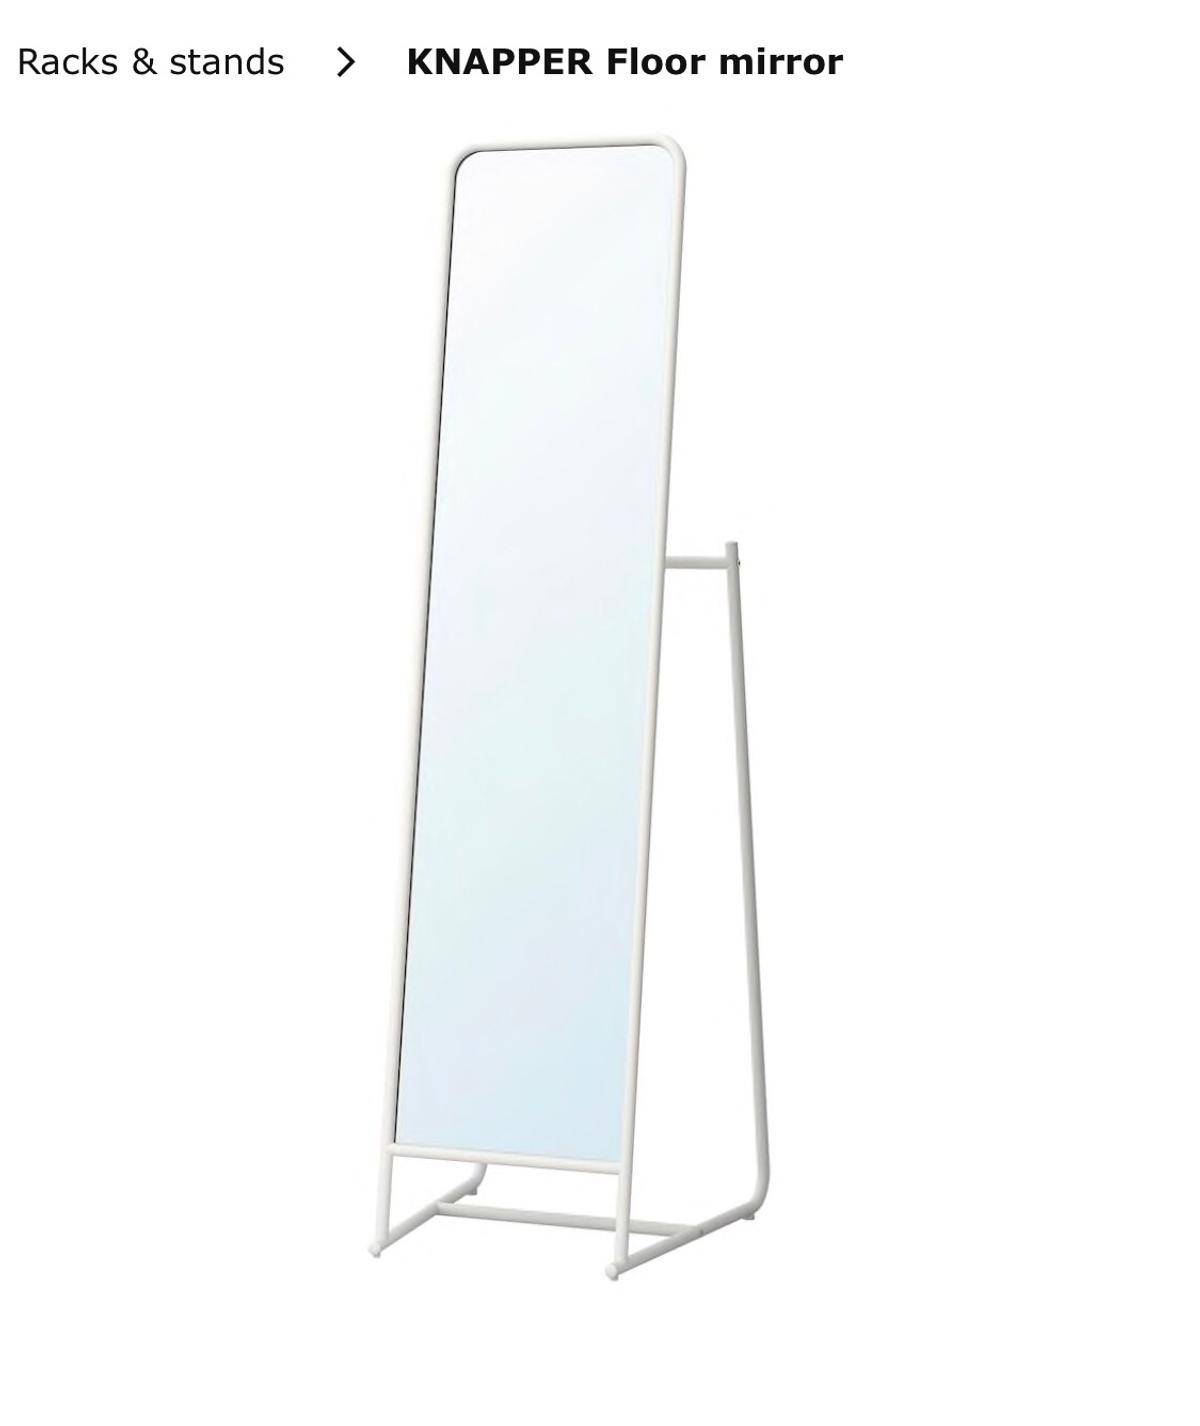 Ikea Floor Mirror With Hooks In Sw13 Thames For 20 00 For Sale Shpock